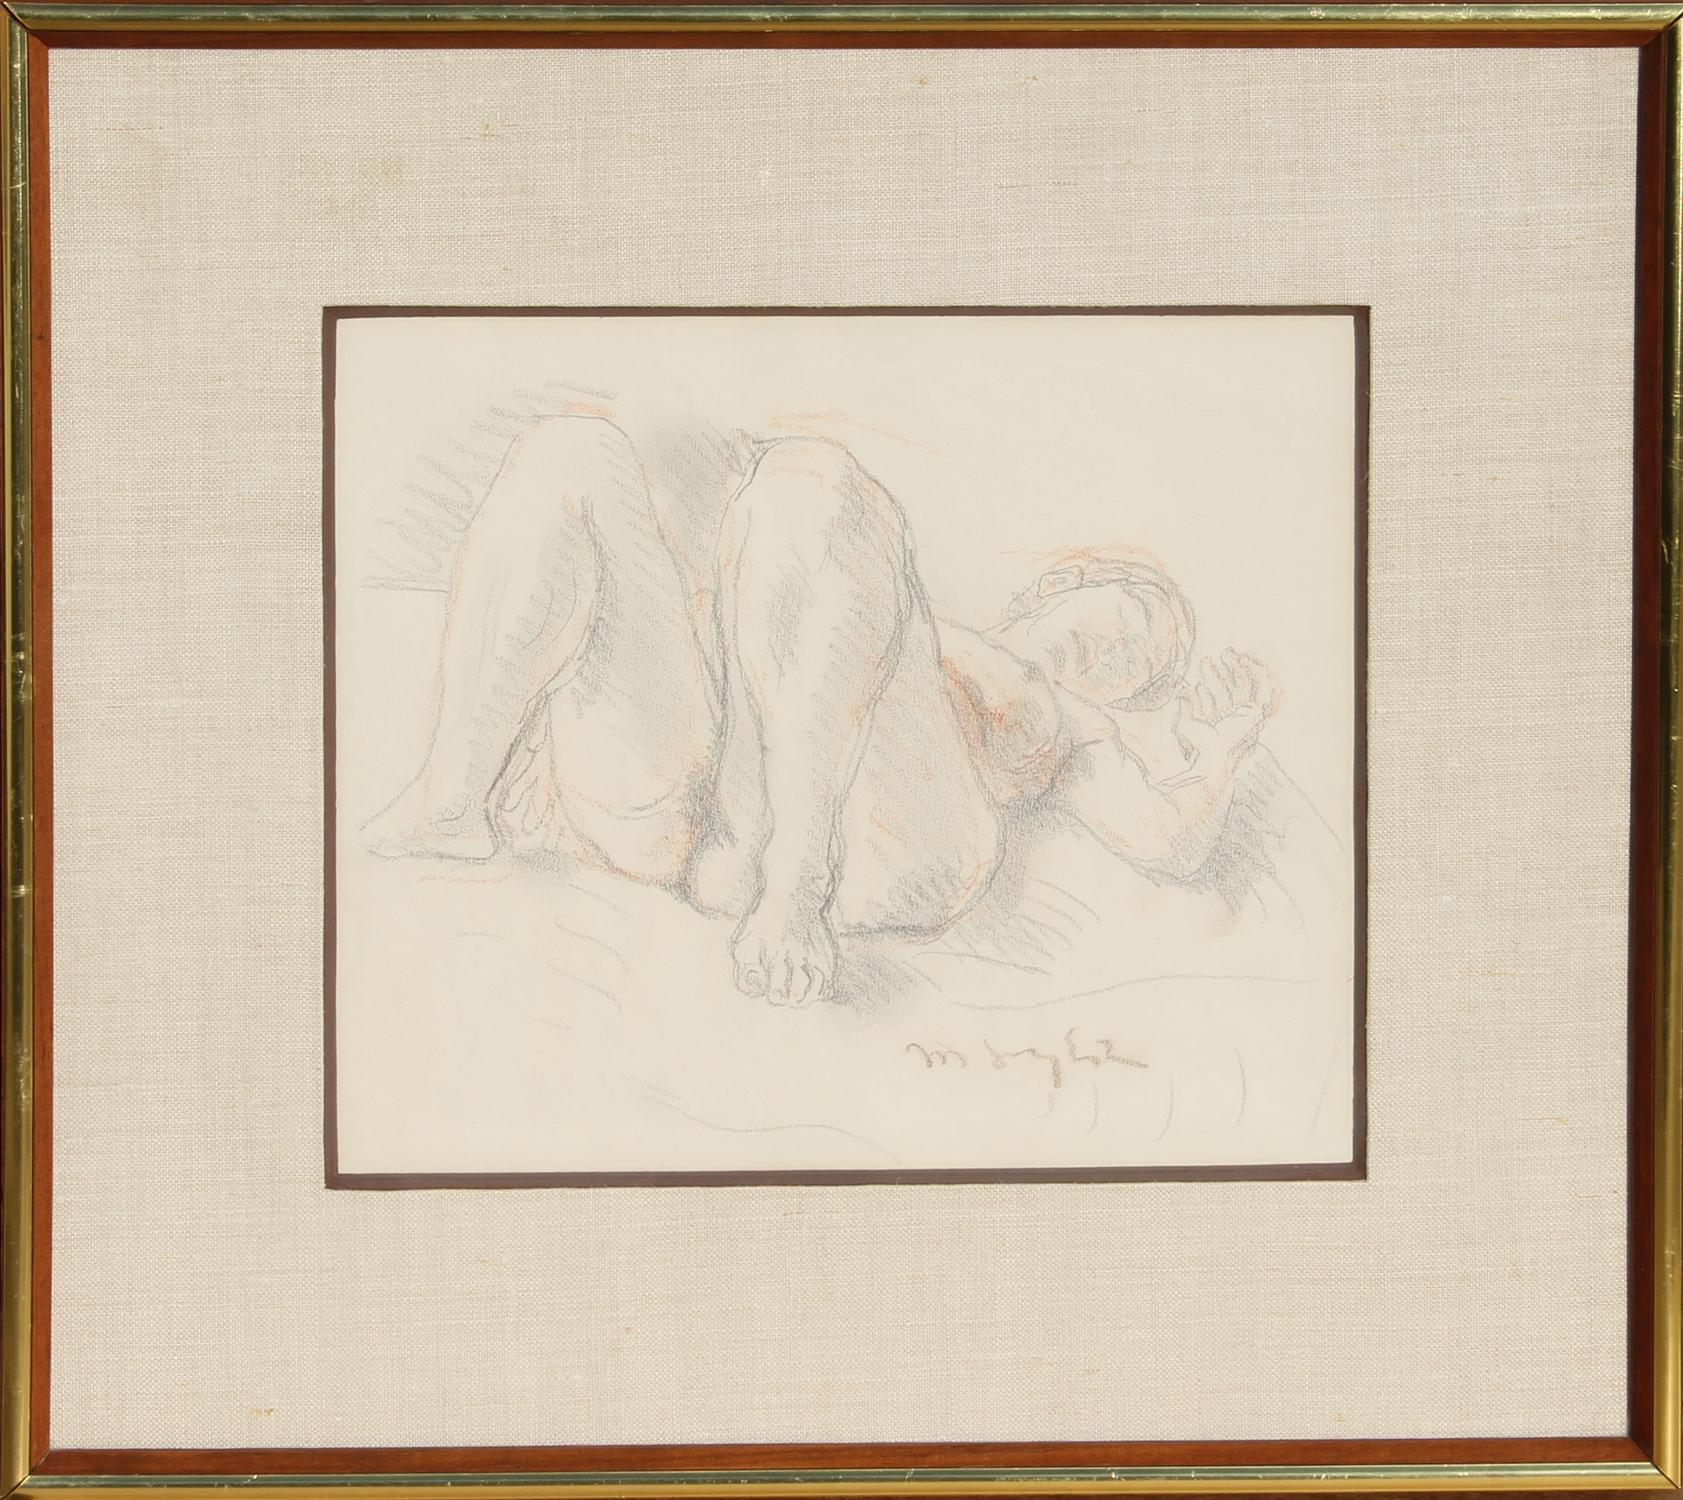 Reclining Nude, Original Drawing by Moses Soyer